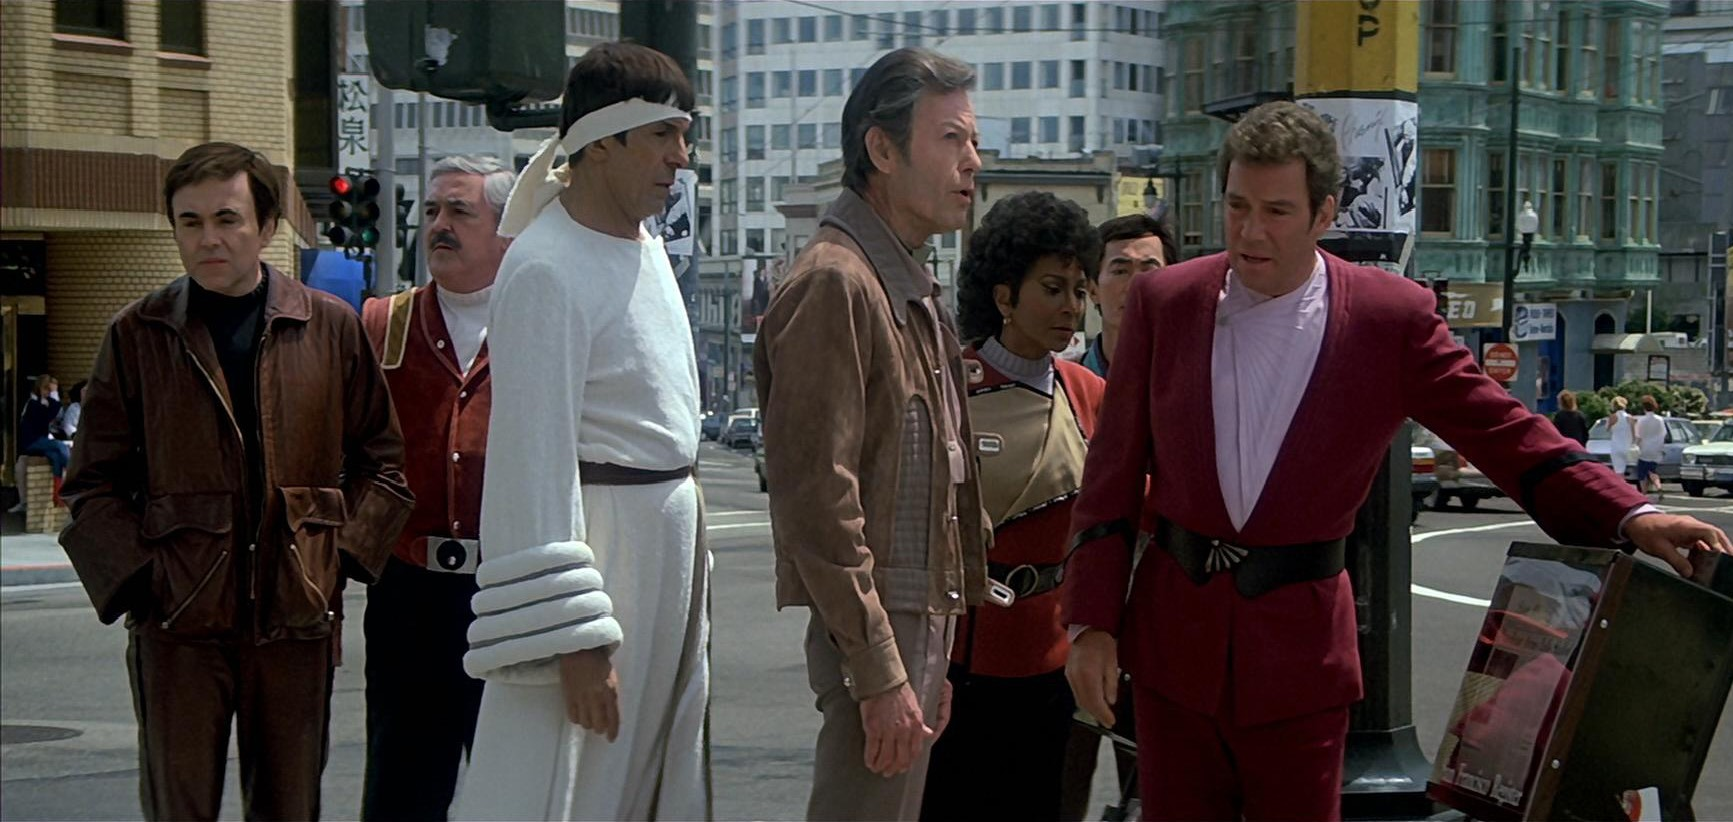 The Enterprise crew travel back to present day San Francisco - (l to r) Chekov (Walter Koenig), Mr Scott (James Doohan), Spock (Leonard Nimoy), Dr McCoy (DeForest Kelley), Uhura (Nichelle Nichols), Sulu (George Takei) and Captain Kirk (William Shatner) in The Voyage Home: Star Trek IV (1986)